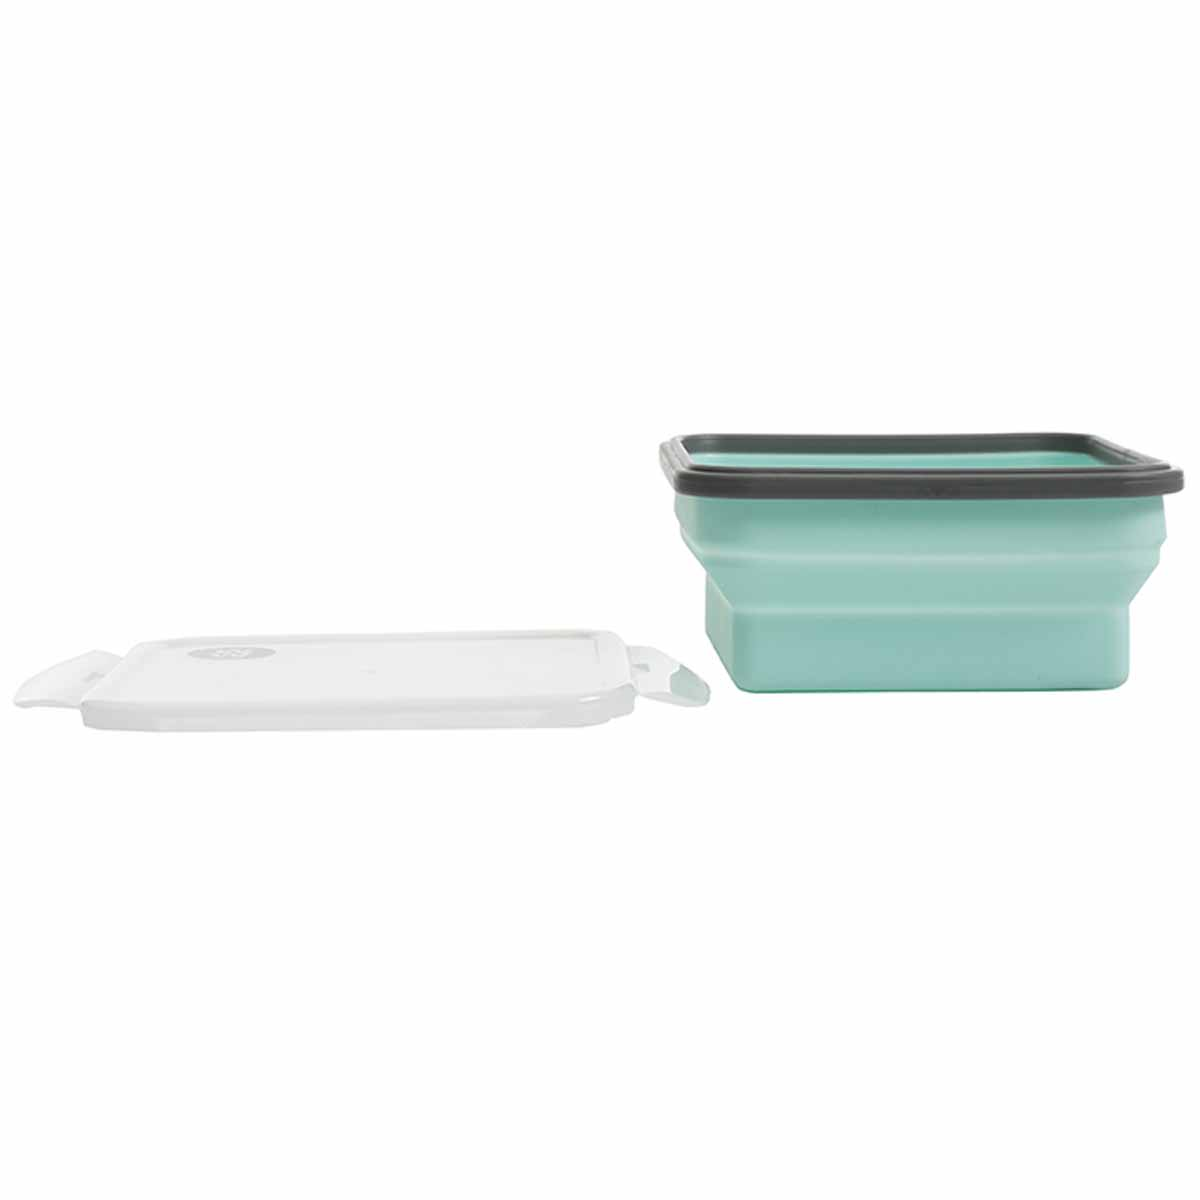 "5"" Silicone Portion Control Container - alternate view"